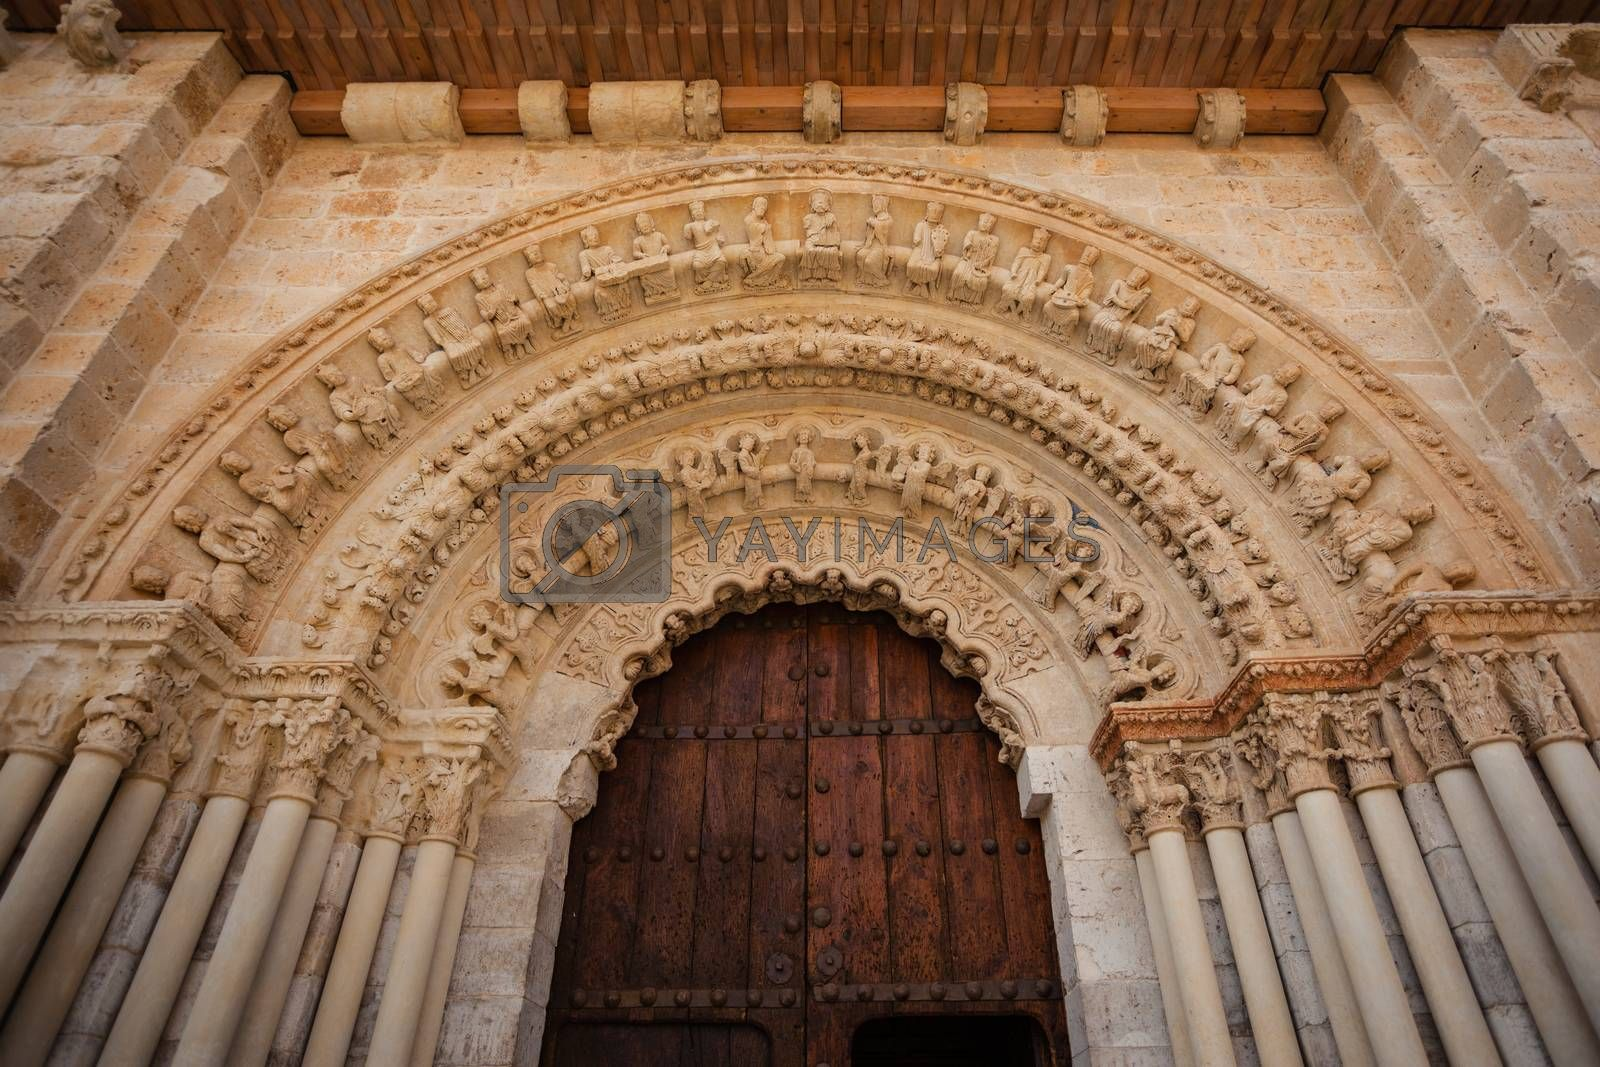 romanesque archivolts and voussoir detail from the collegiate church of the town of Toro in Zamora Spain